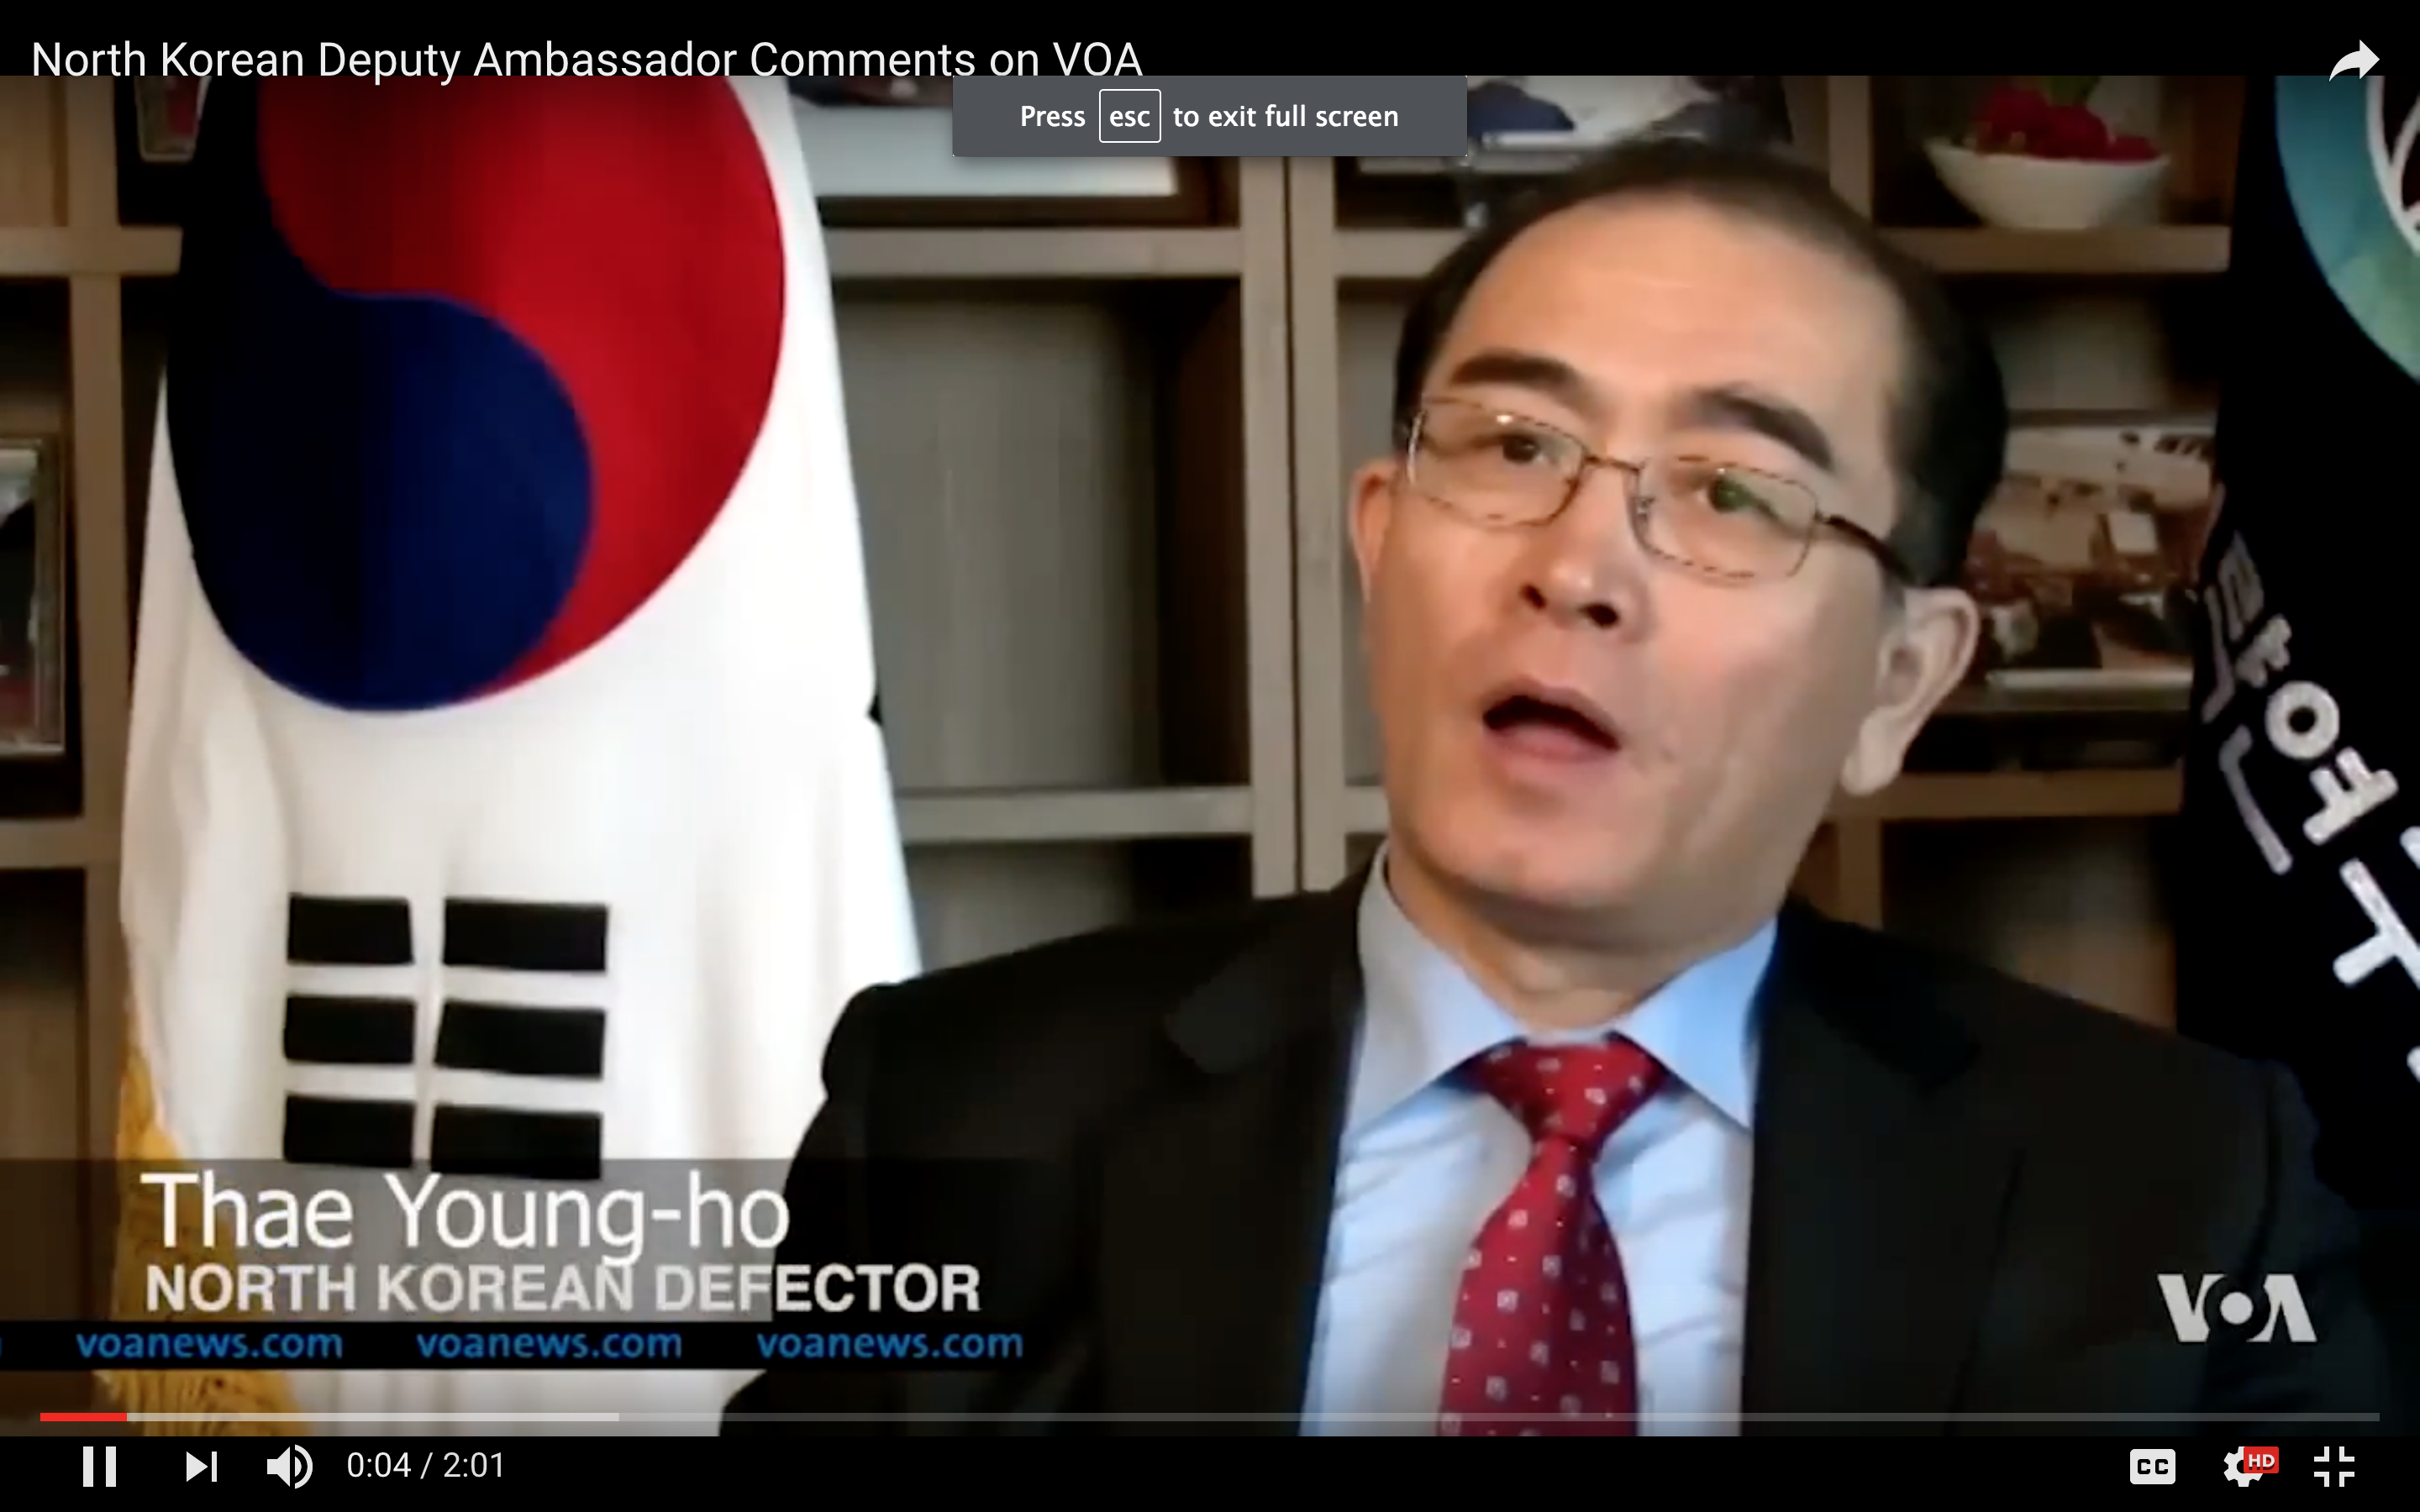 Man in suit with Korean flag behind him